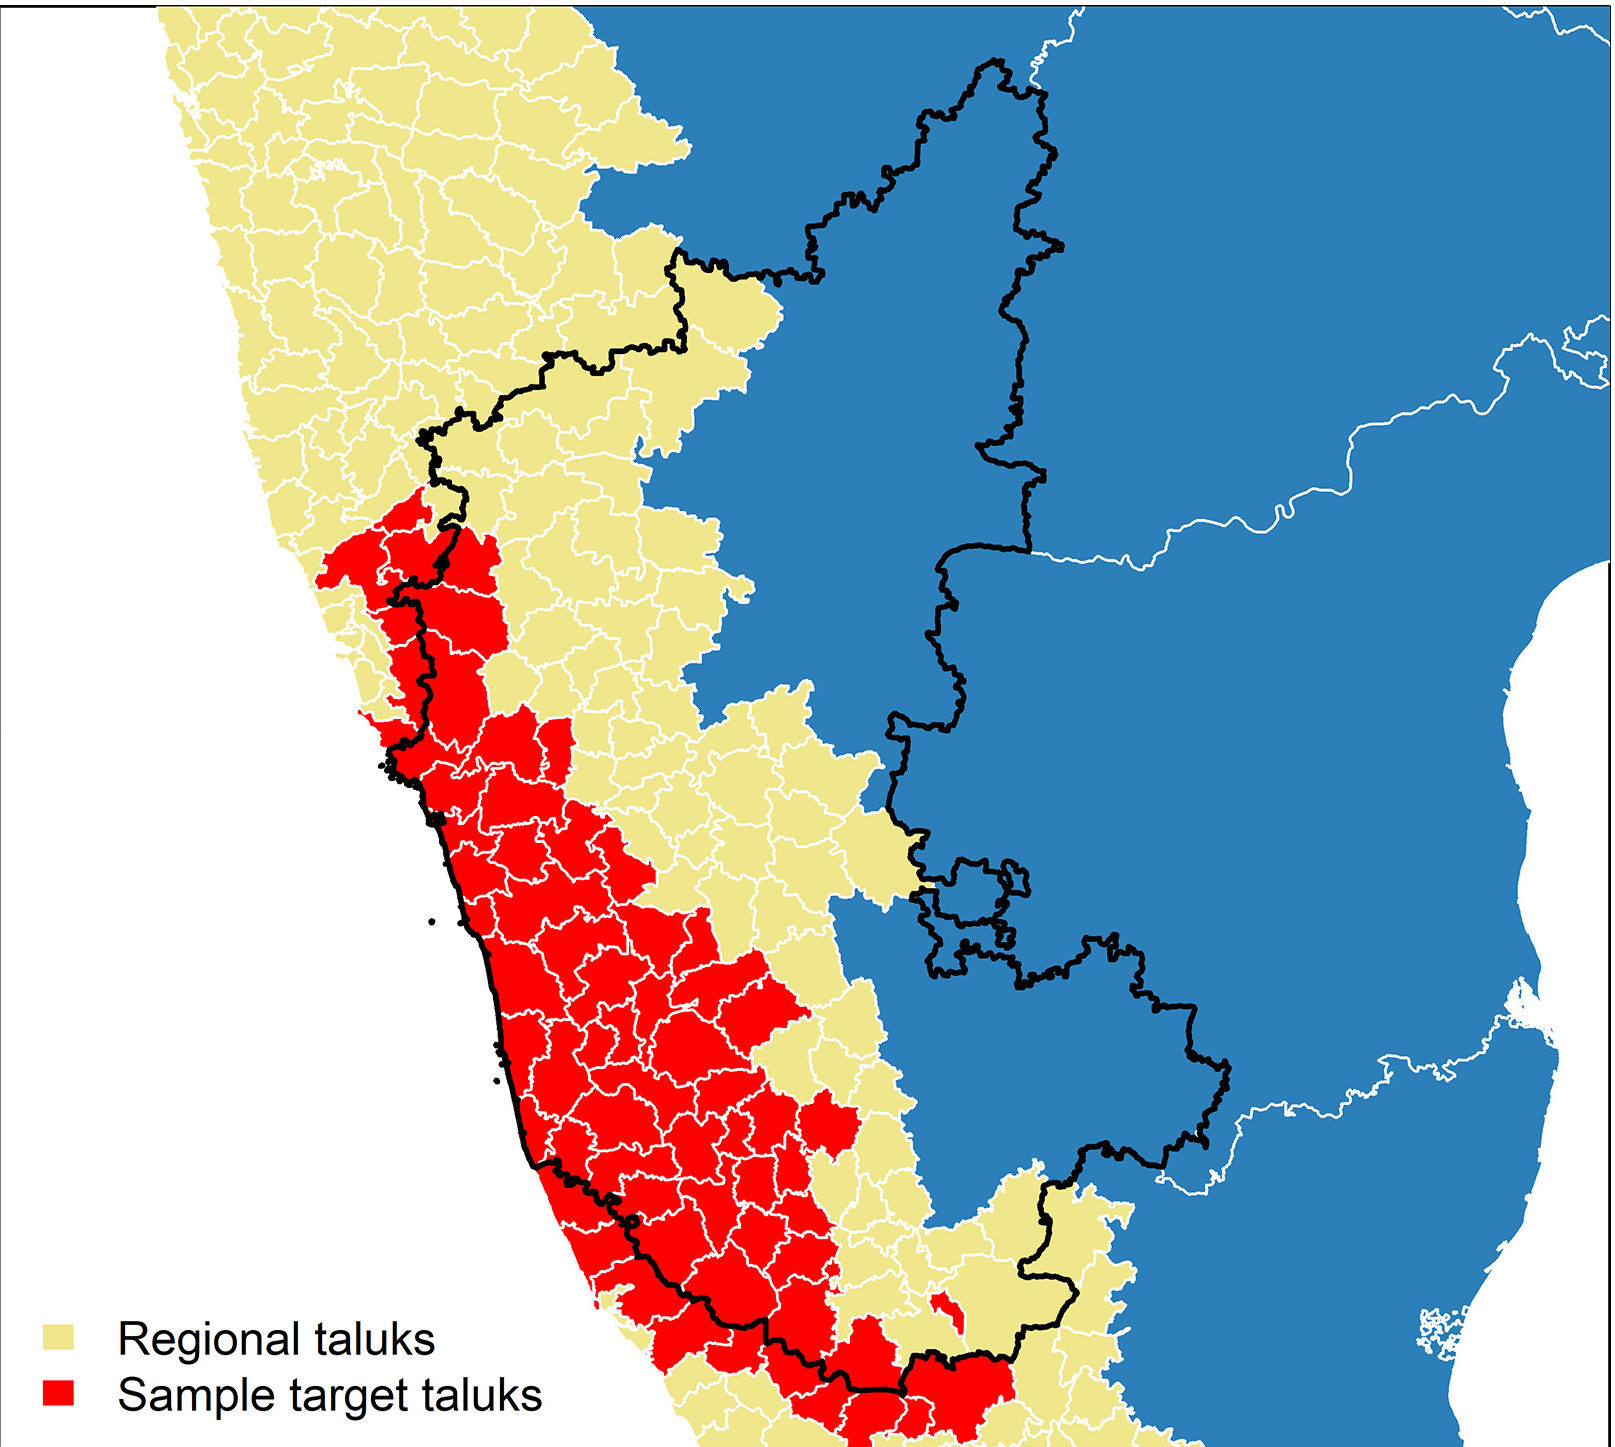 Taluks identified as priority targets (red) for implementing animal-human surveillance in Karnataka state. Once the taluks are selected, One Health surveillance infrastructure can be developed by working in concert with the forest department, animal husbandry and veterinary services and with primary healthcare centres. Map by Walsh et. al.